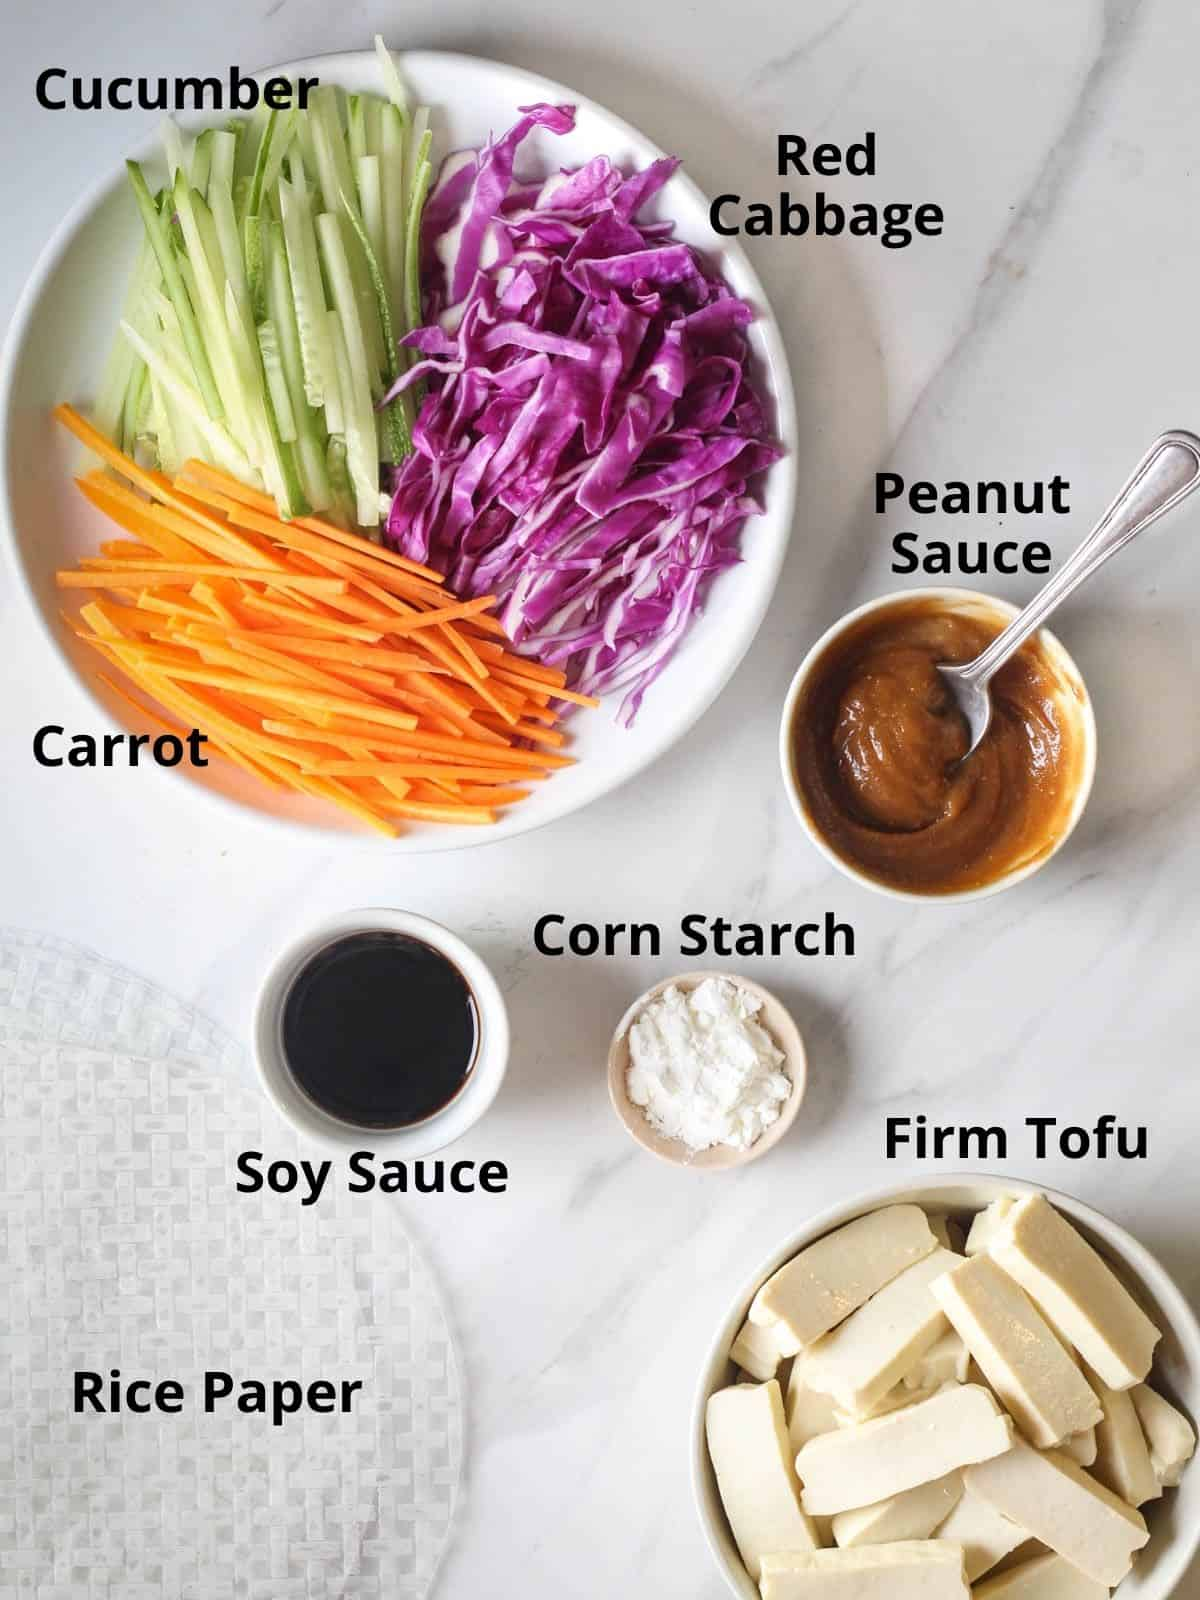 Ingredients needed in this recipe like carrot, cabbage, cucumber, peanut sauce, soy sauce, corn starch and tofu.